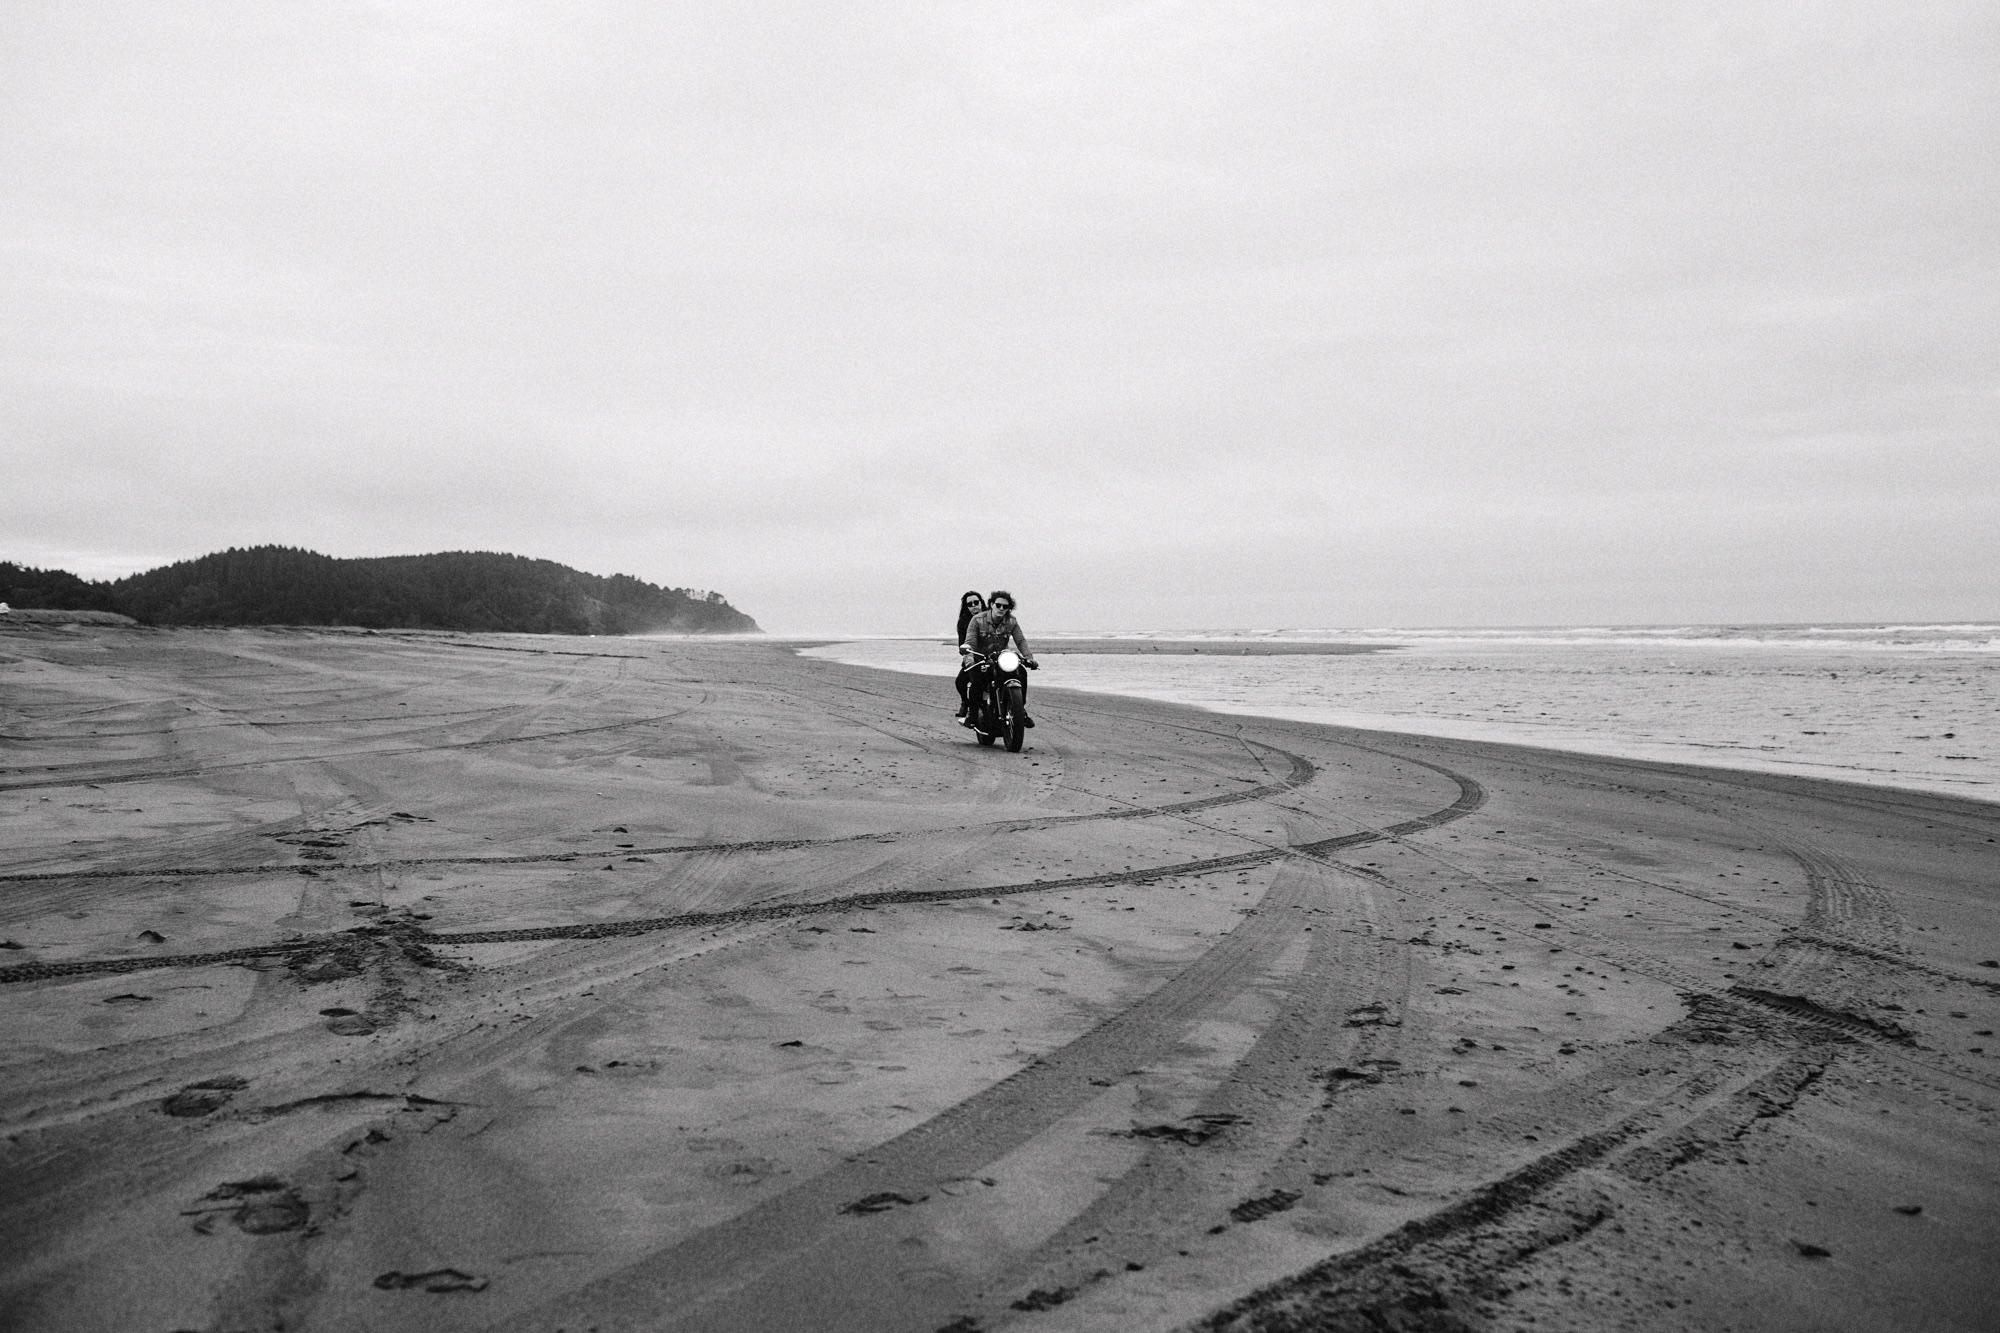 beach motorcycle ride